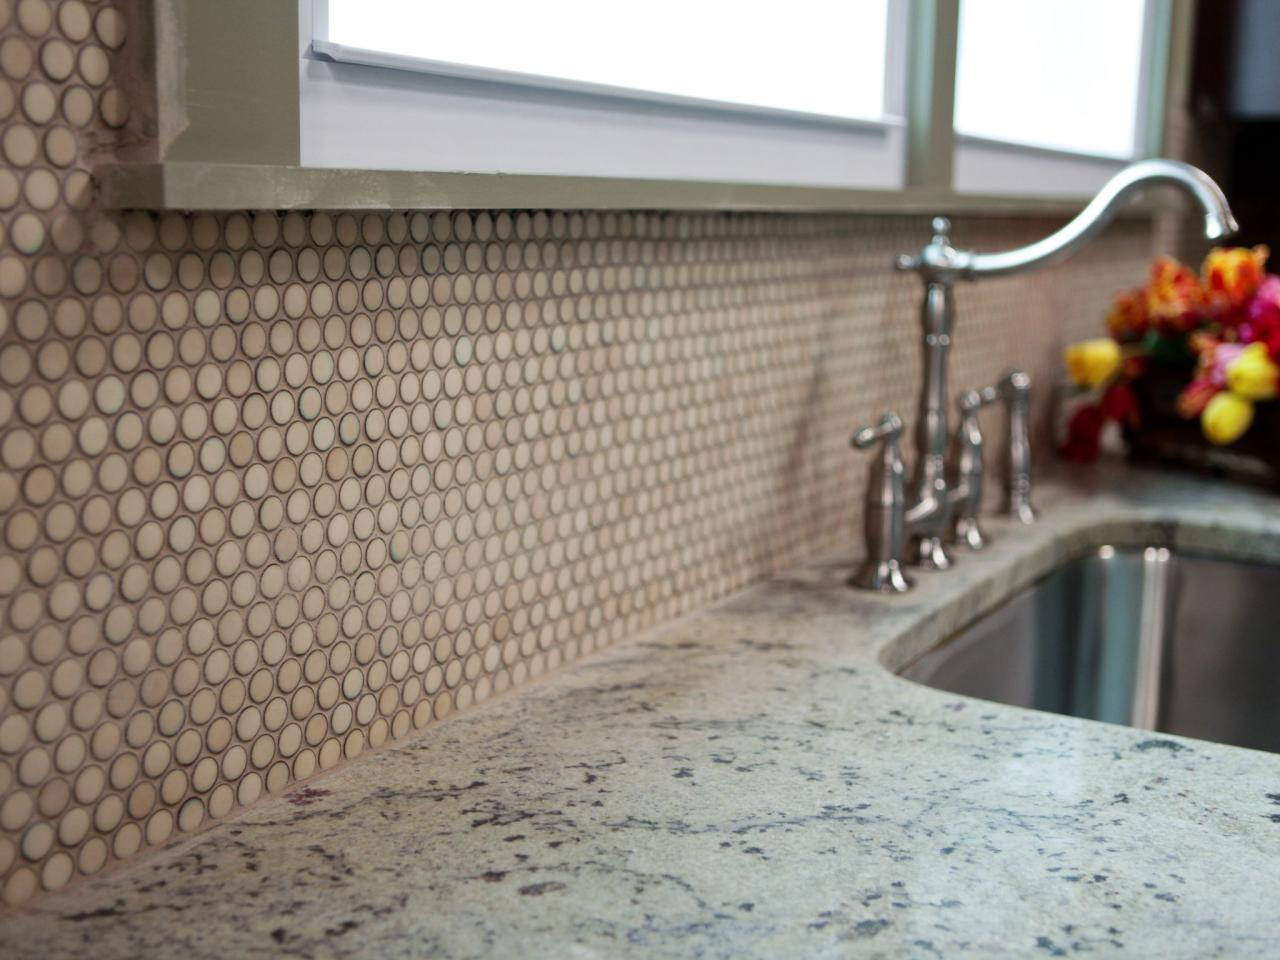 Mosaic Tile Backsplash Ideas - Mosaic Tile Backsplash Ideas: Pictures & Tips From HGTV HGTV